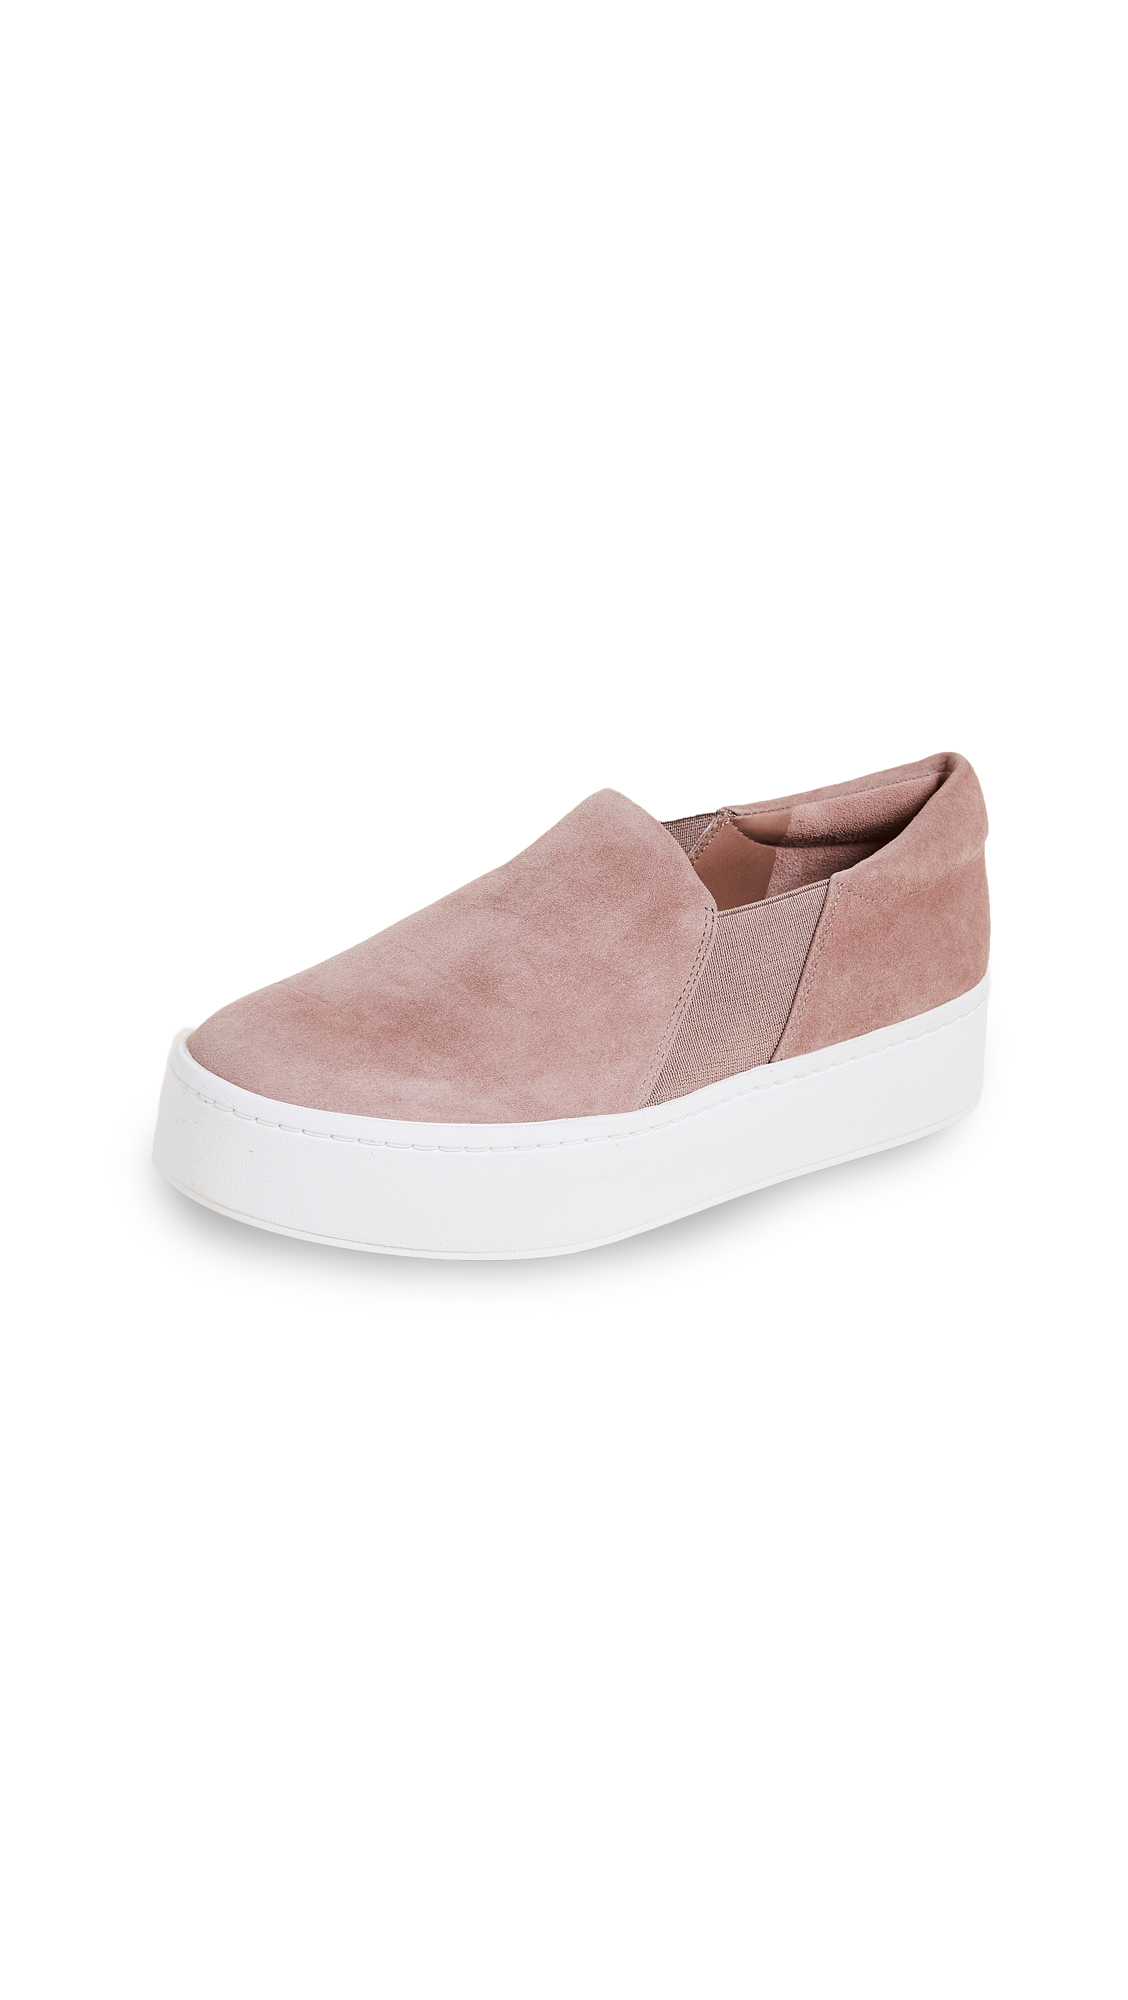 Vince Warren Platform Slip On Sneakers - Hydrangea